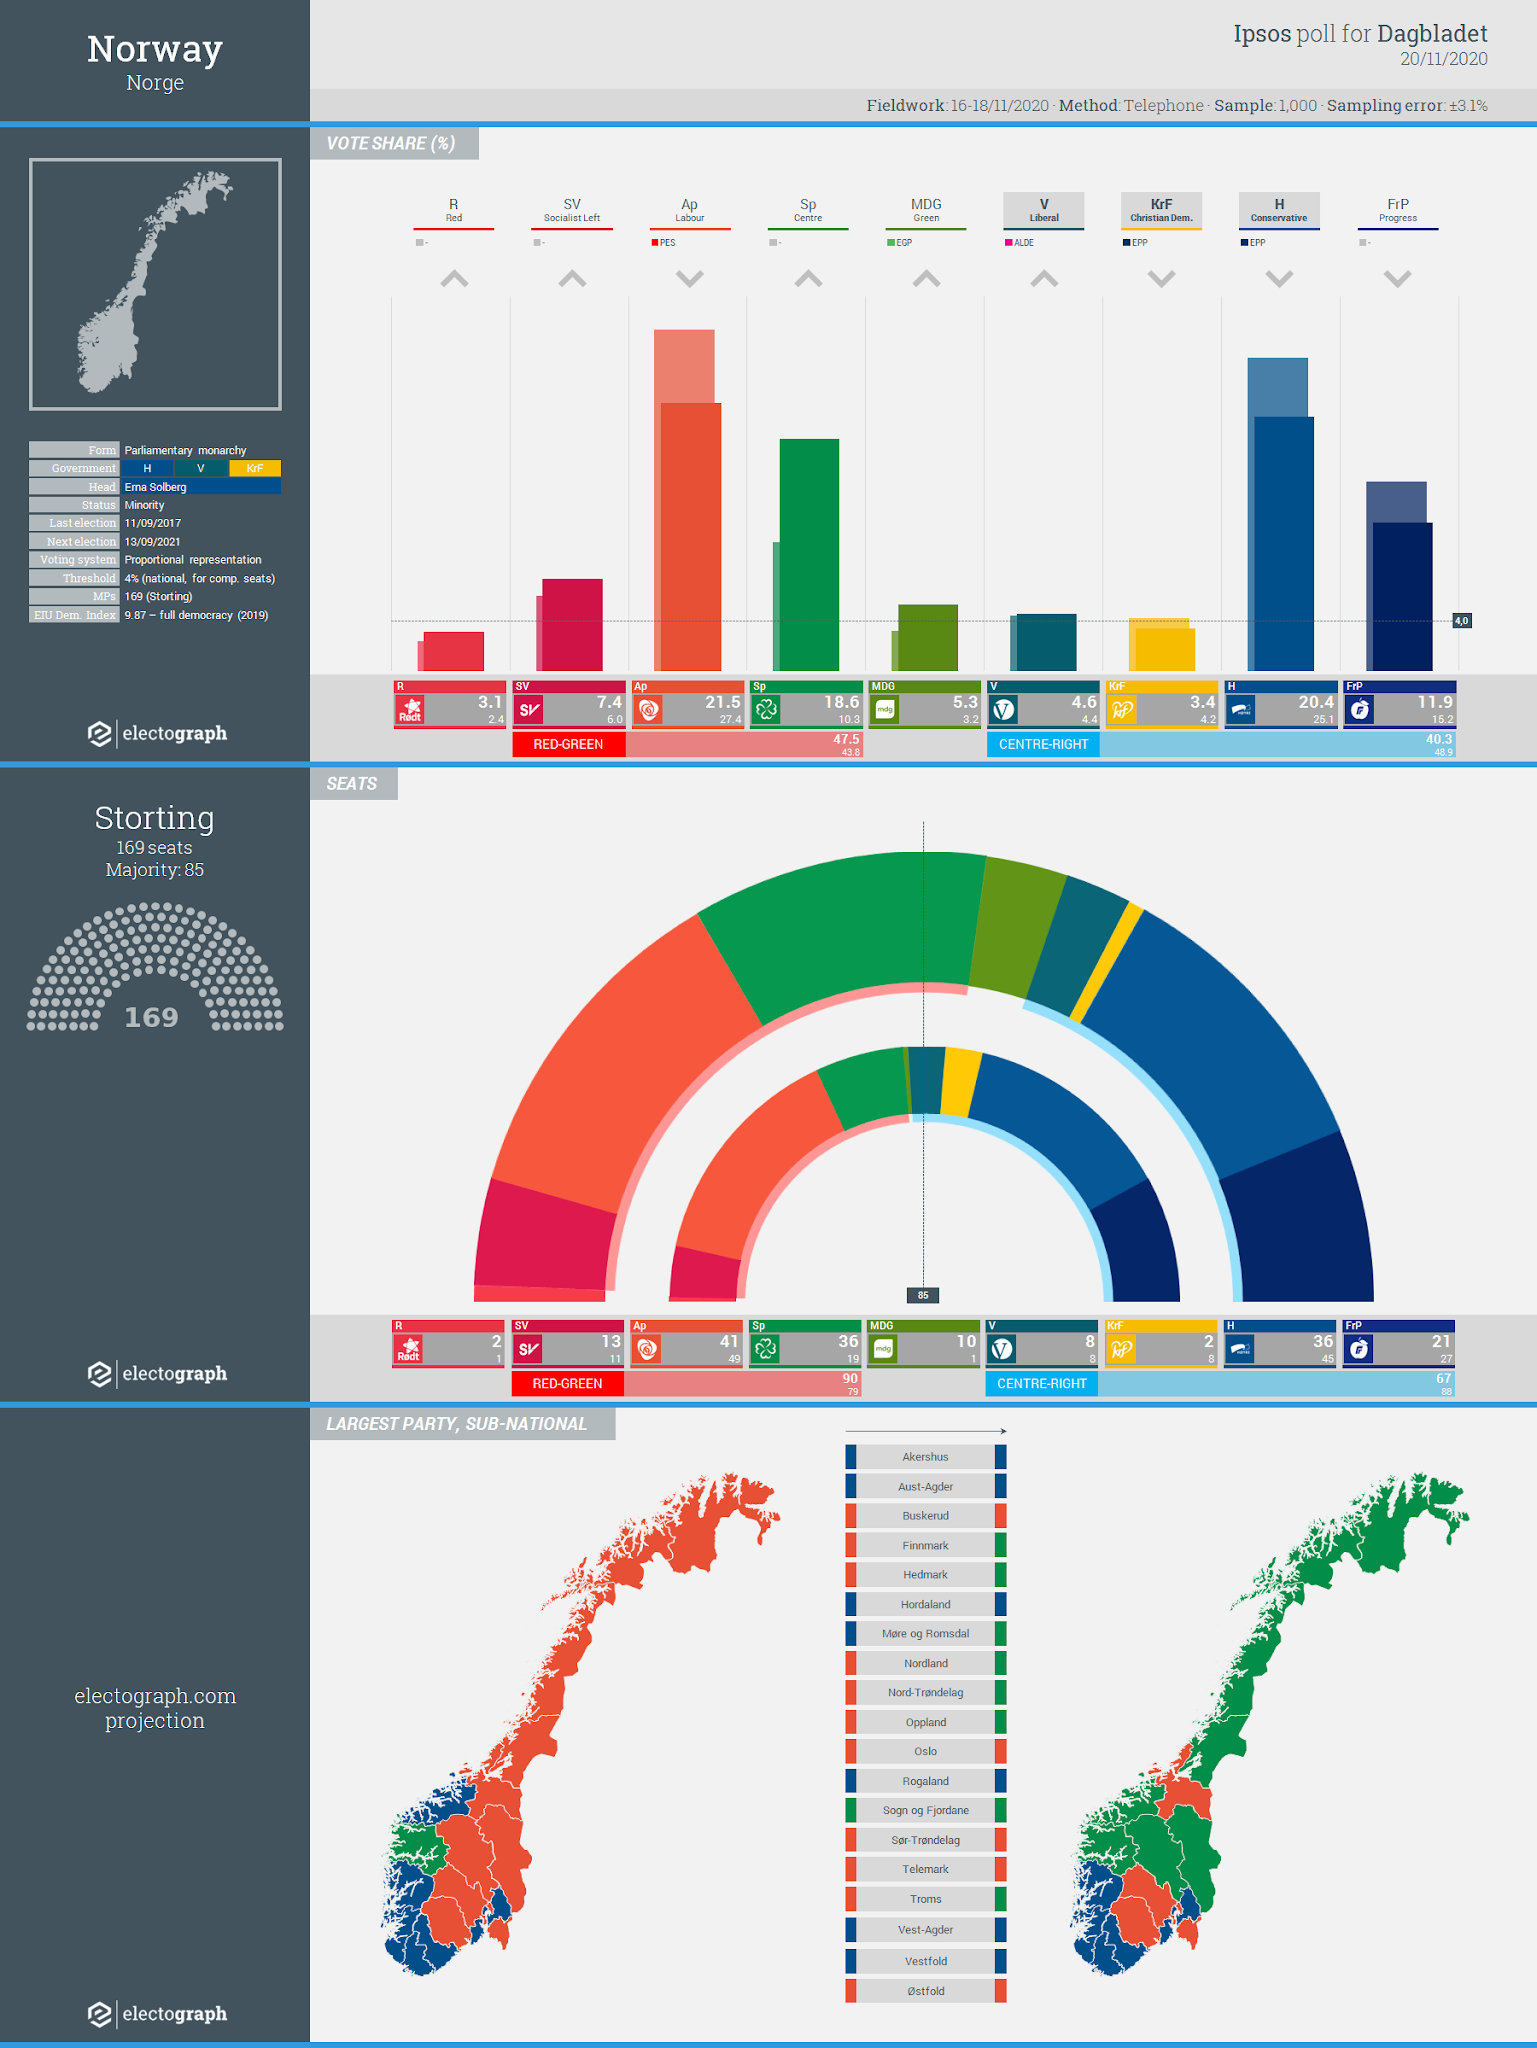 NORWAY: Ipsos poll chart for Dagbladet, 20 November 2020